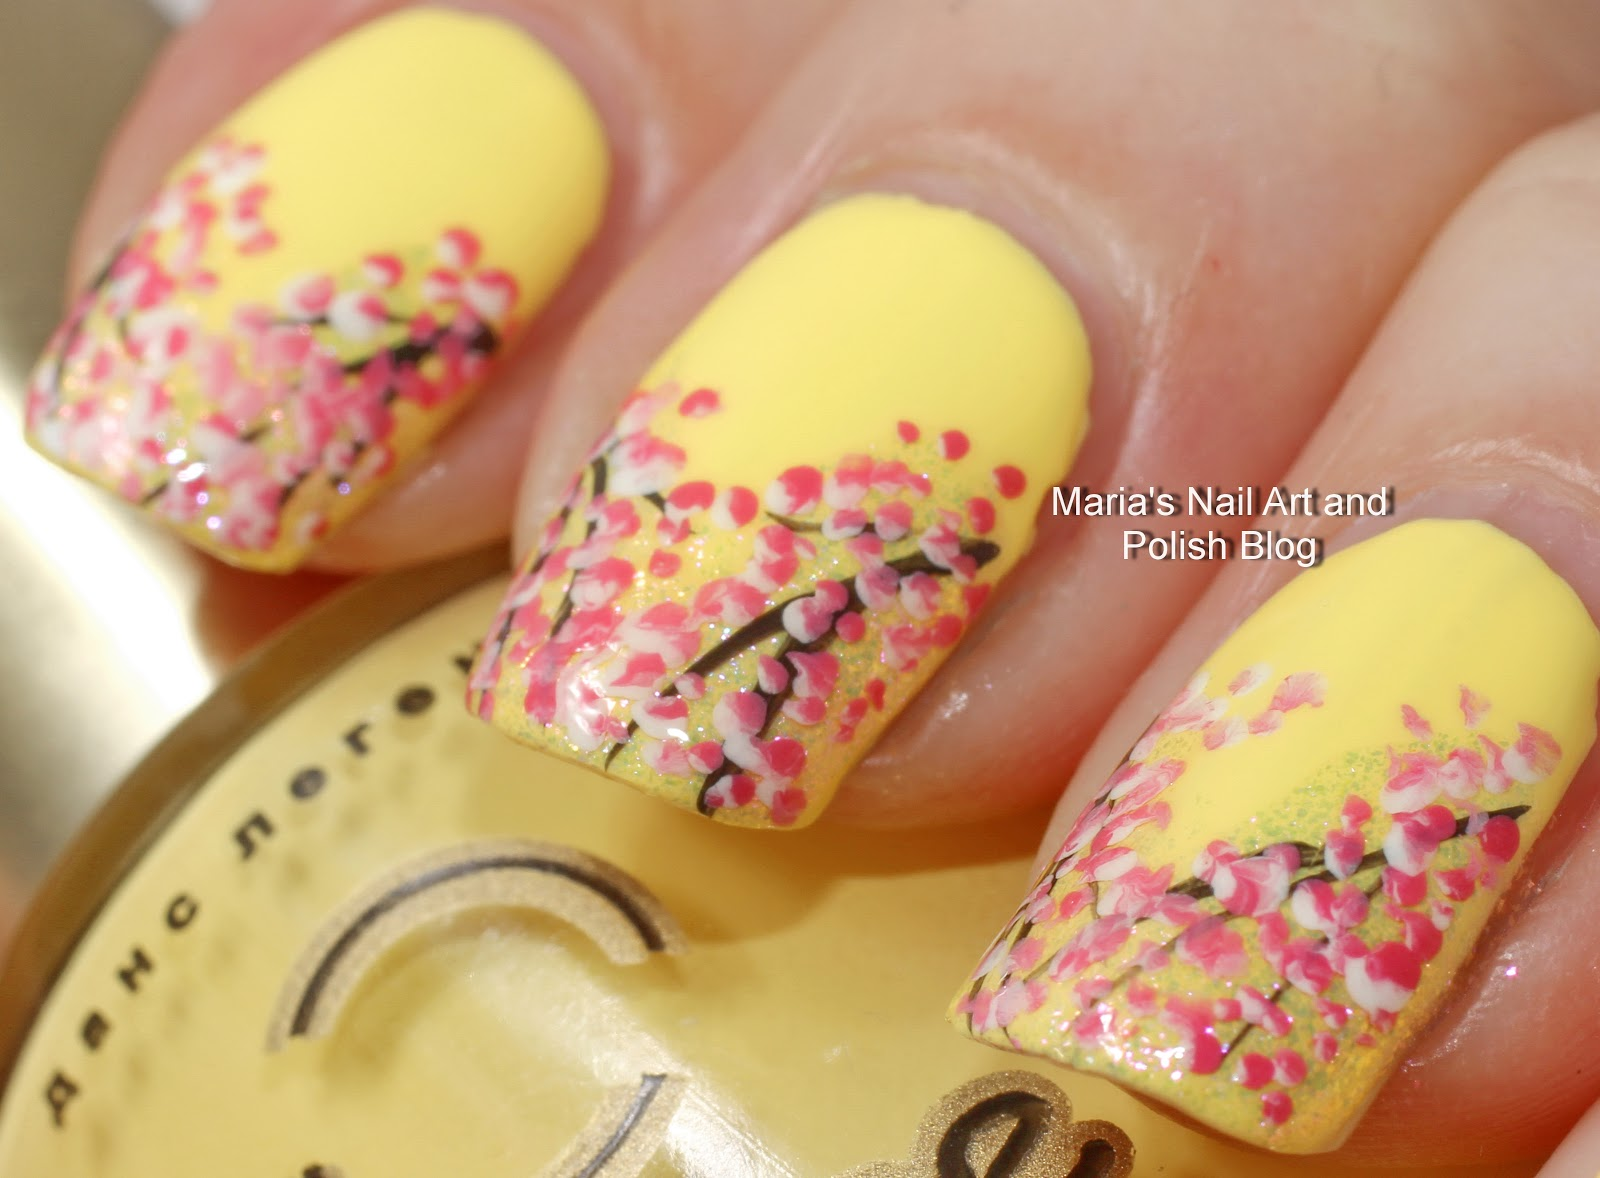 V shaped nail designs ~ Beautify themselves with sweet nails